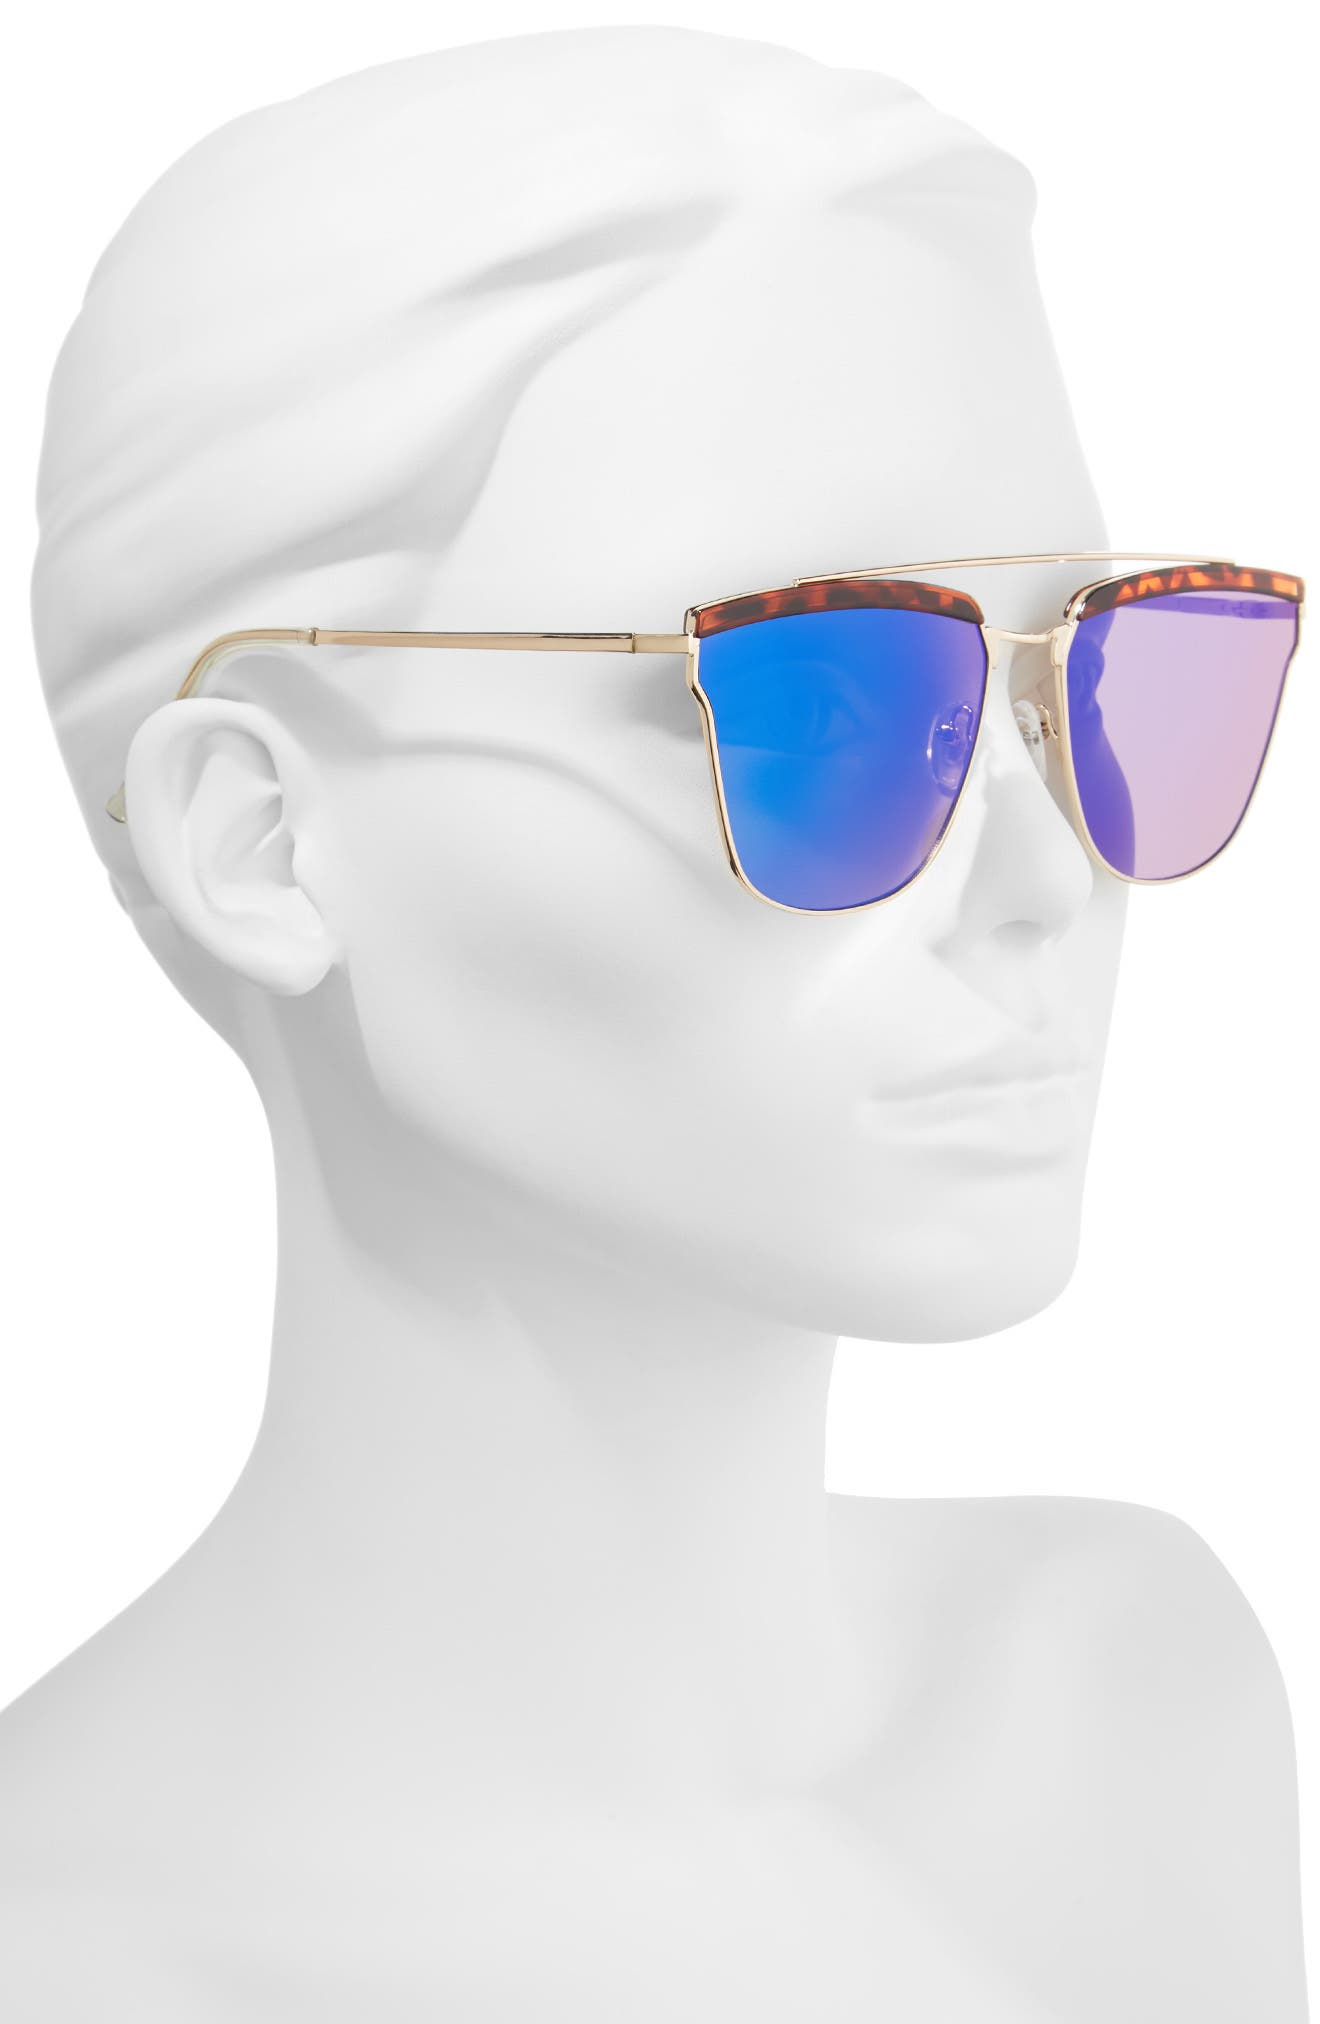 60mm Mirror Sunglasses,                             Alternate thumbnail 2, color,                             Gold/ Tort